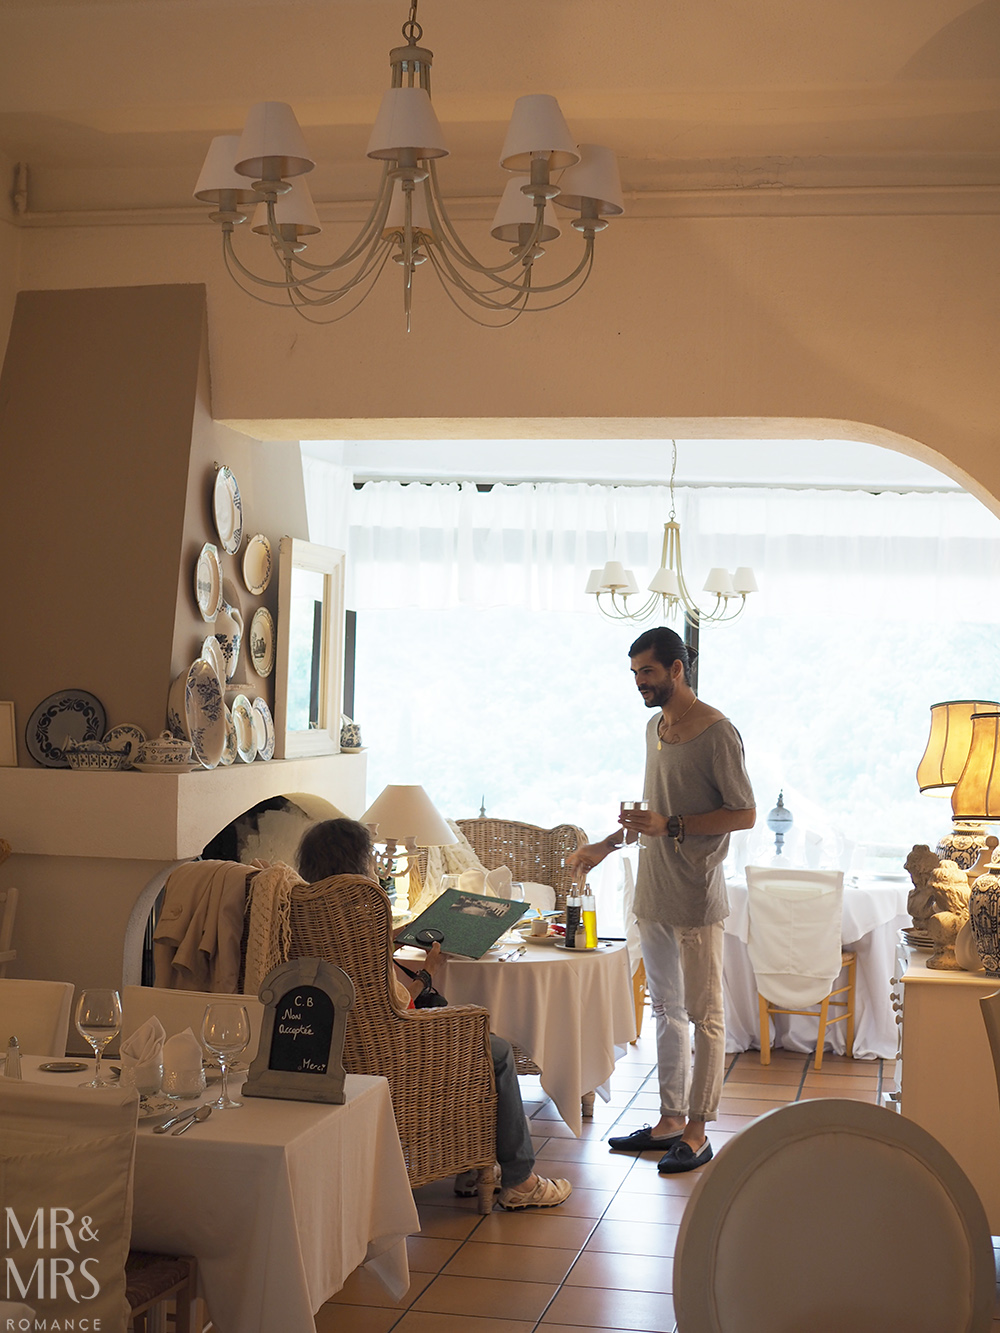 Inside the Restaurant Beau Sejour Gorbio - Mr & Mrs Romance